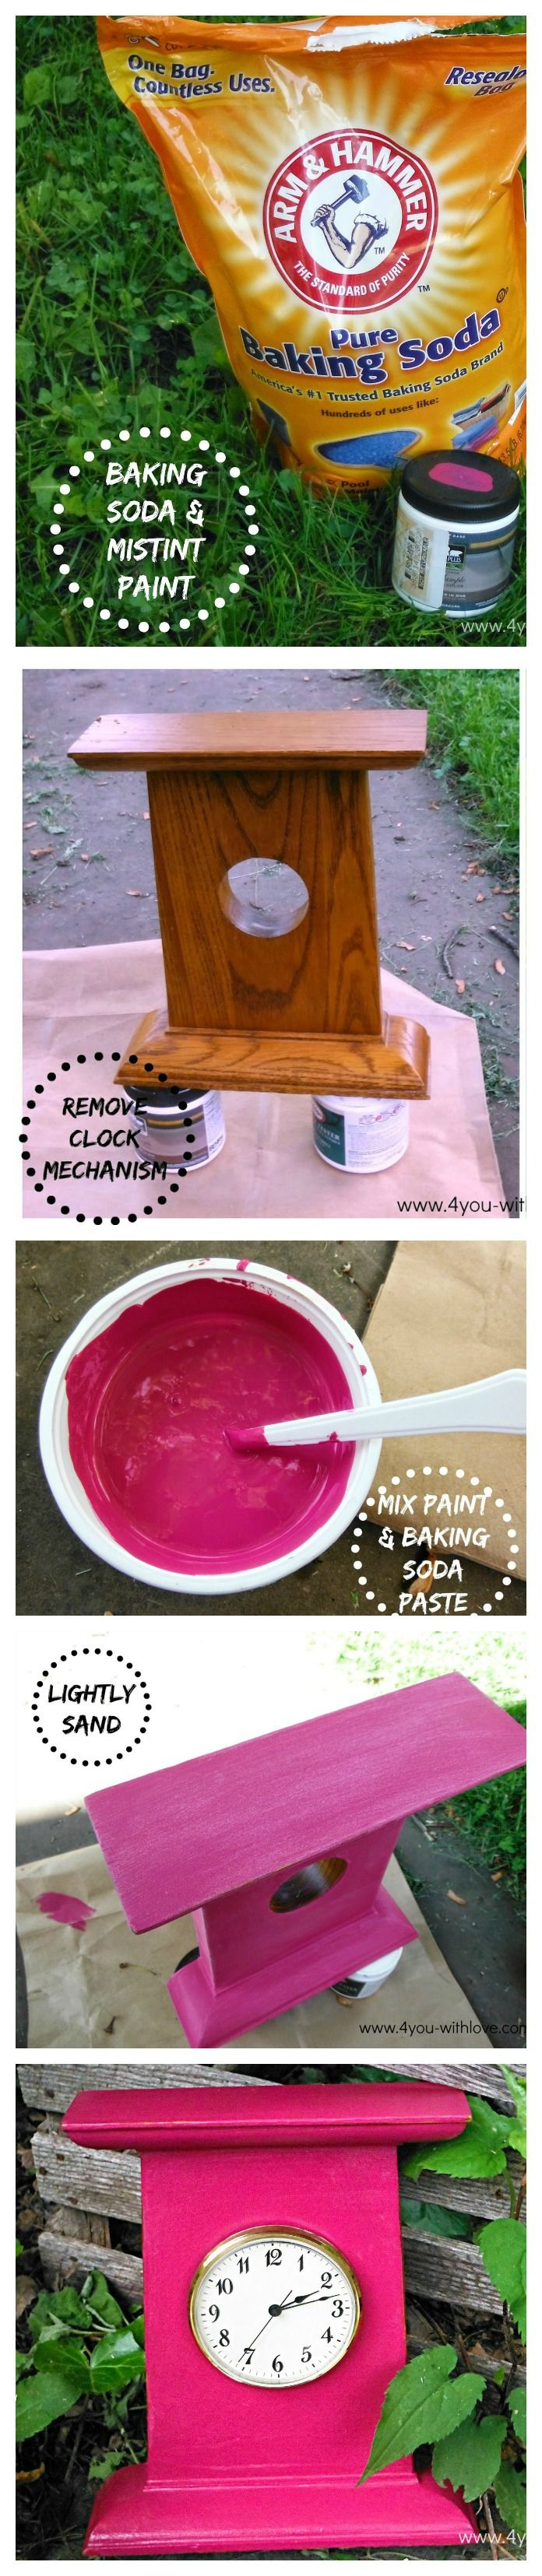 DIY Challk Paint TutorialDiy Ideas, Crafts Ideas, Challk Painting, Chalk Painting Diy, Crafts Diy, Painting Tutorials, Diy Challk, Diy Projects, Creative Painting